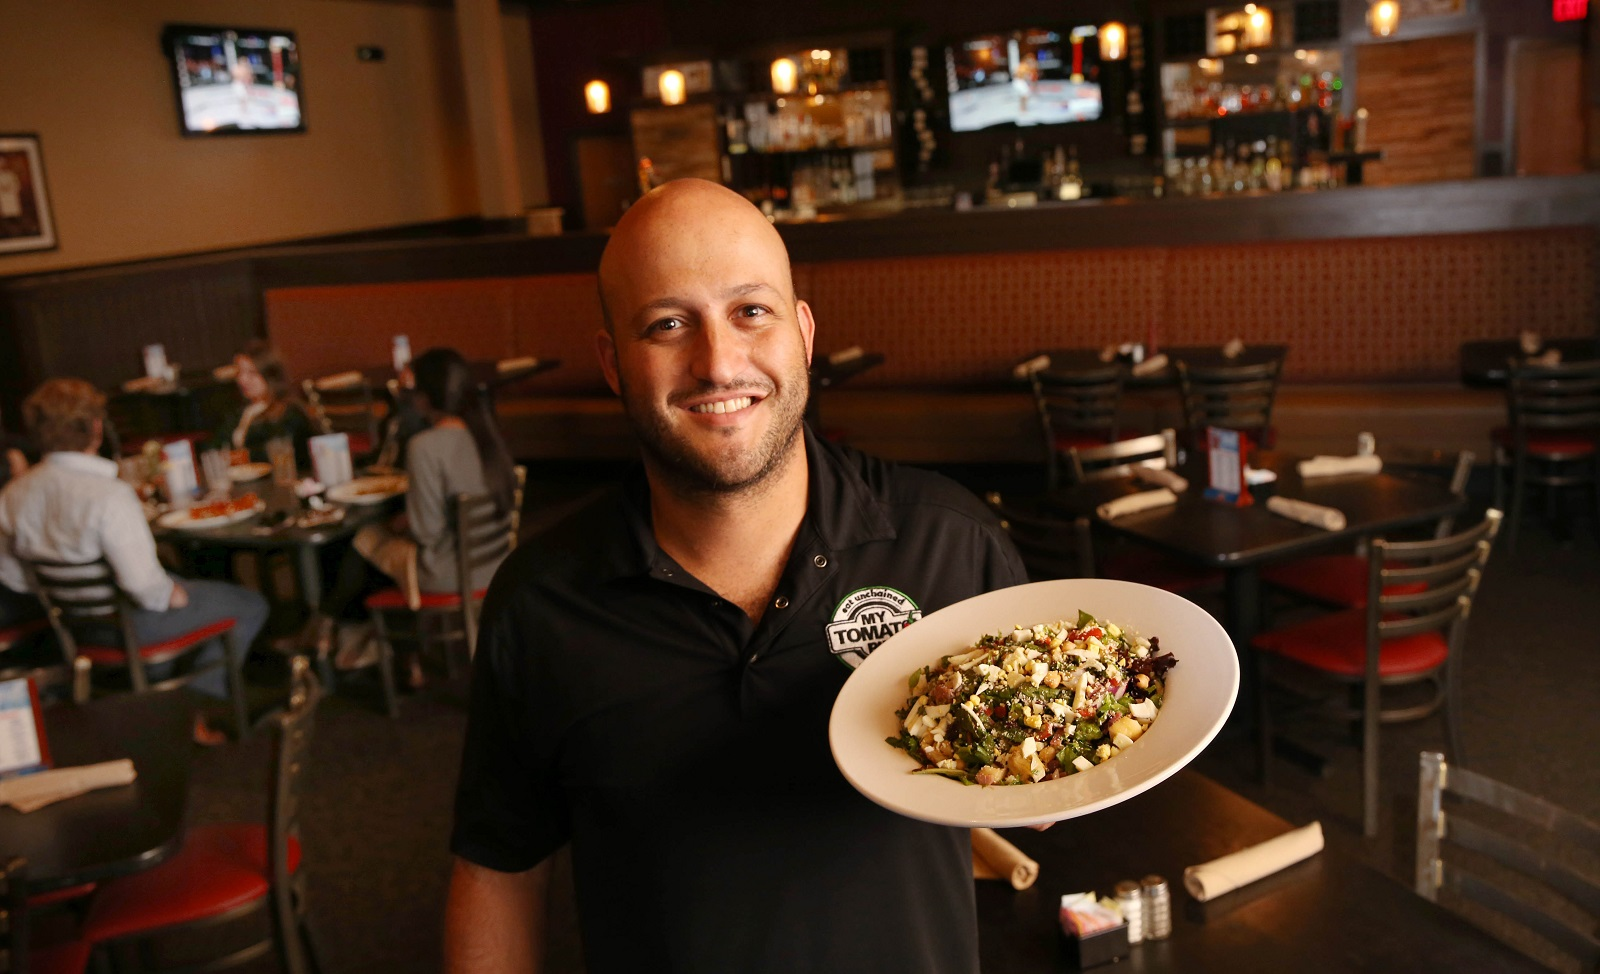 My Tomato Pie owner Anthony Scioli presents the Antoinette's chopped salad. (Sharon Cantillon/Buffalo News)